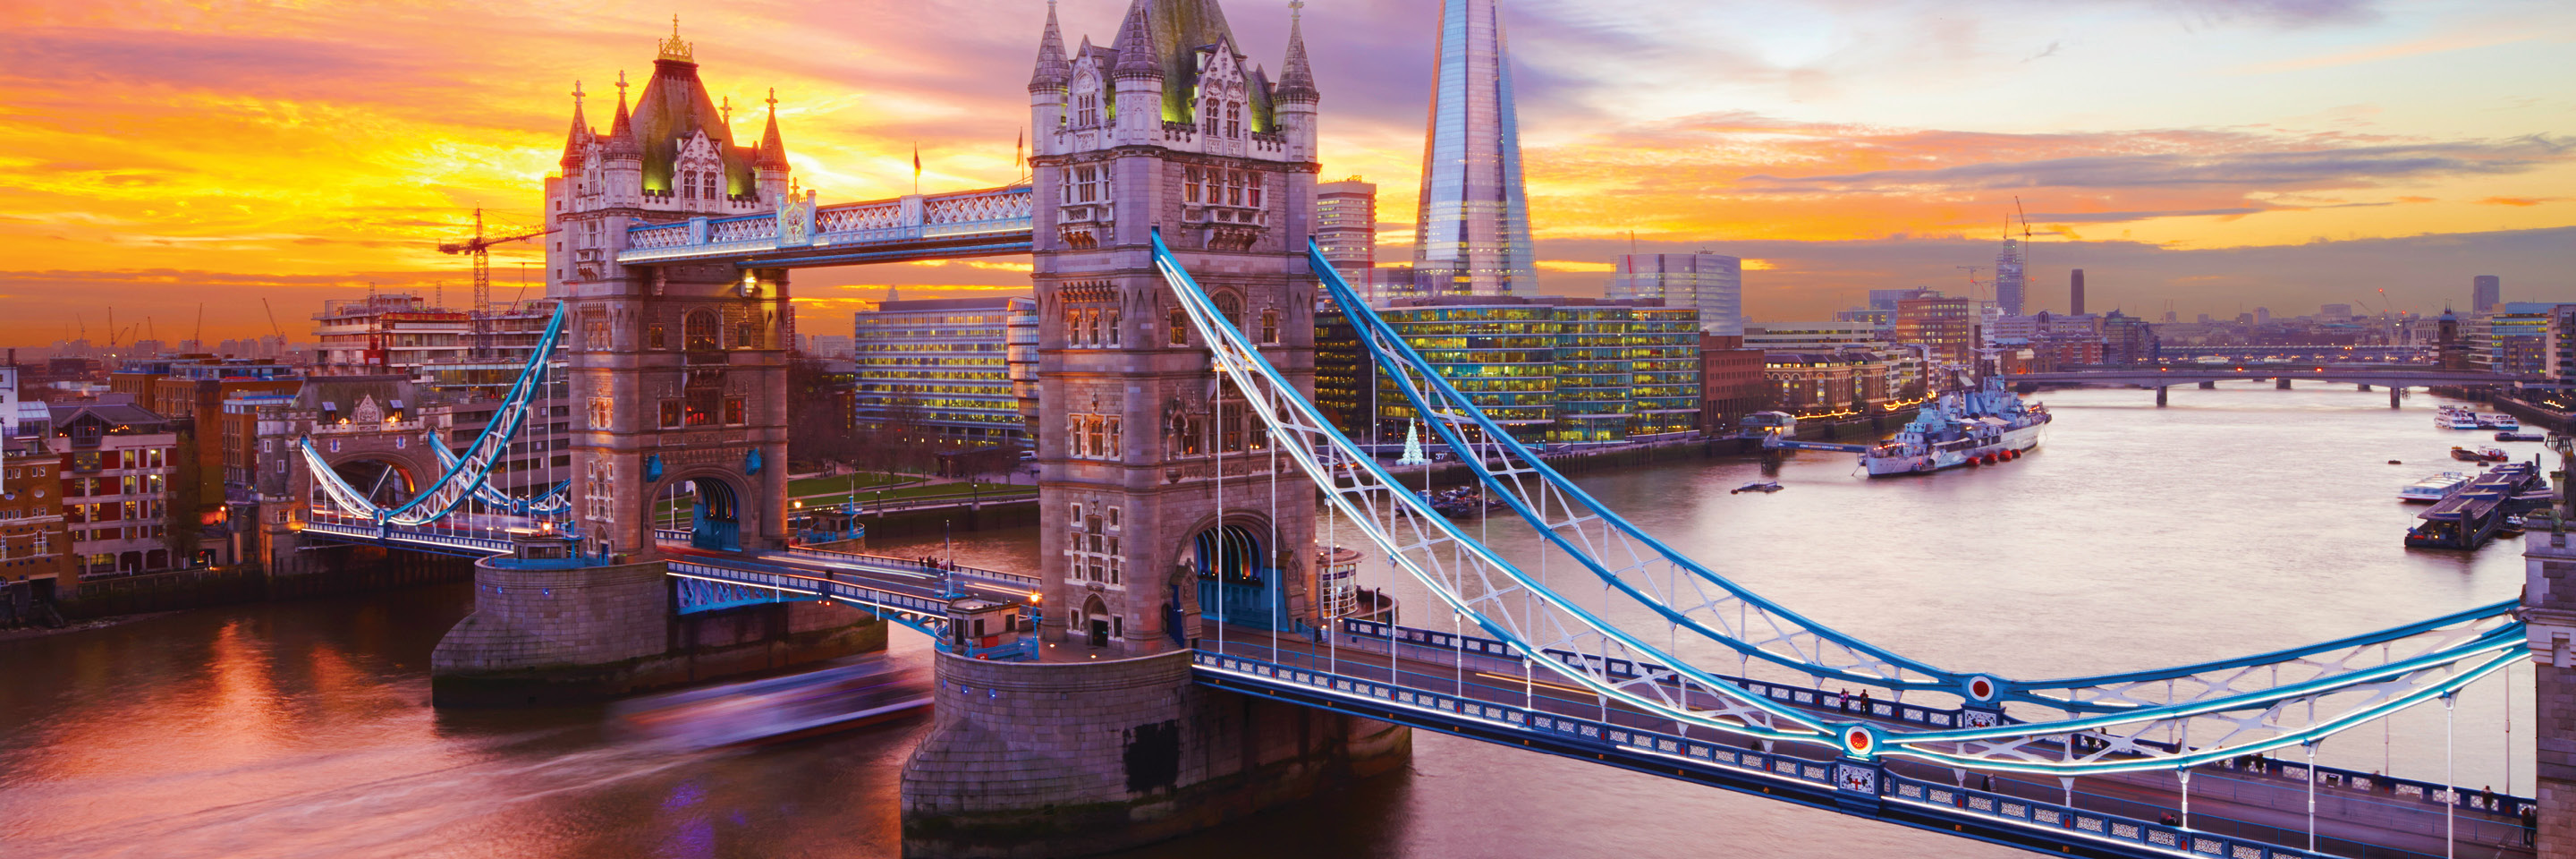 The Best of Europe with London